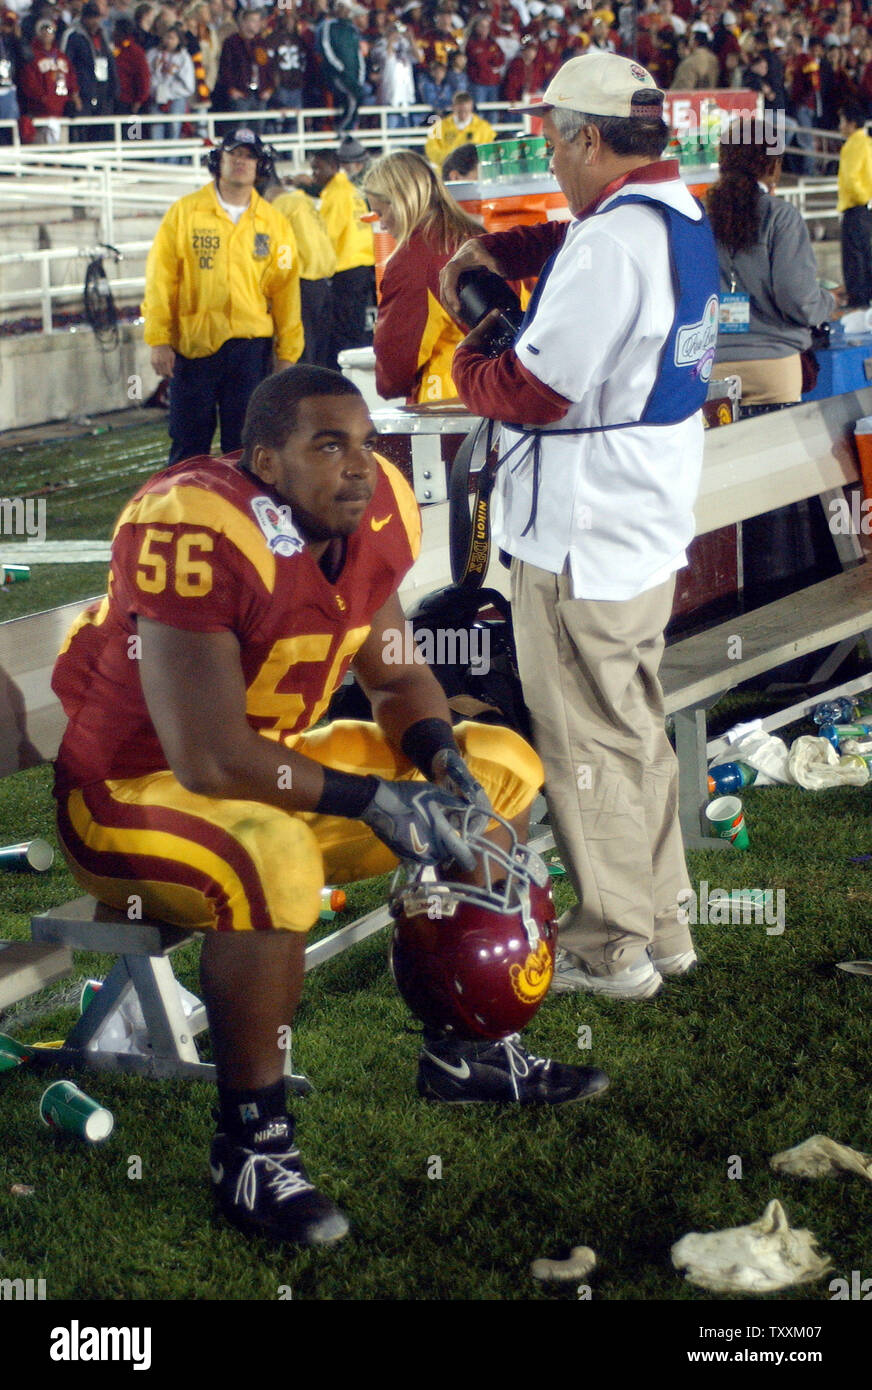 University of Southern California's Ryan Powdrell, sits after losing to the University of Texas 41-38 in the Championship Game, January 4, 2006 at the Rosebowl in Pasadena, California. (UPI Photo/Michael Tweed) - Stock Image